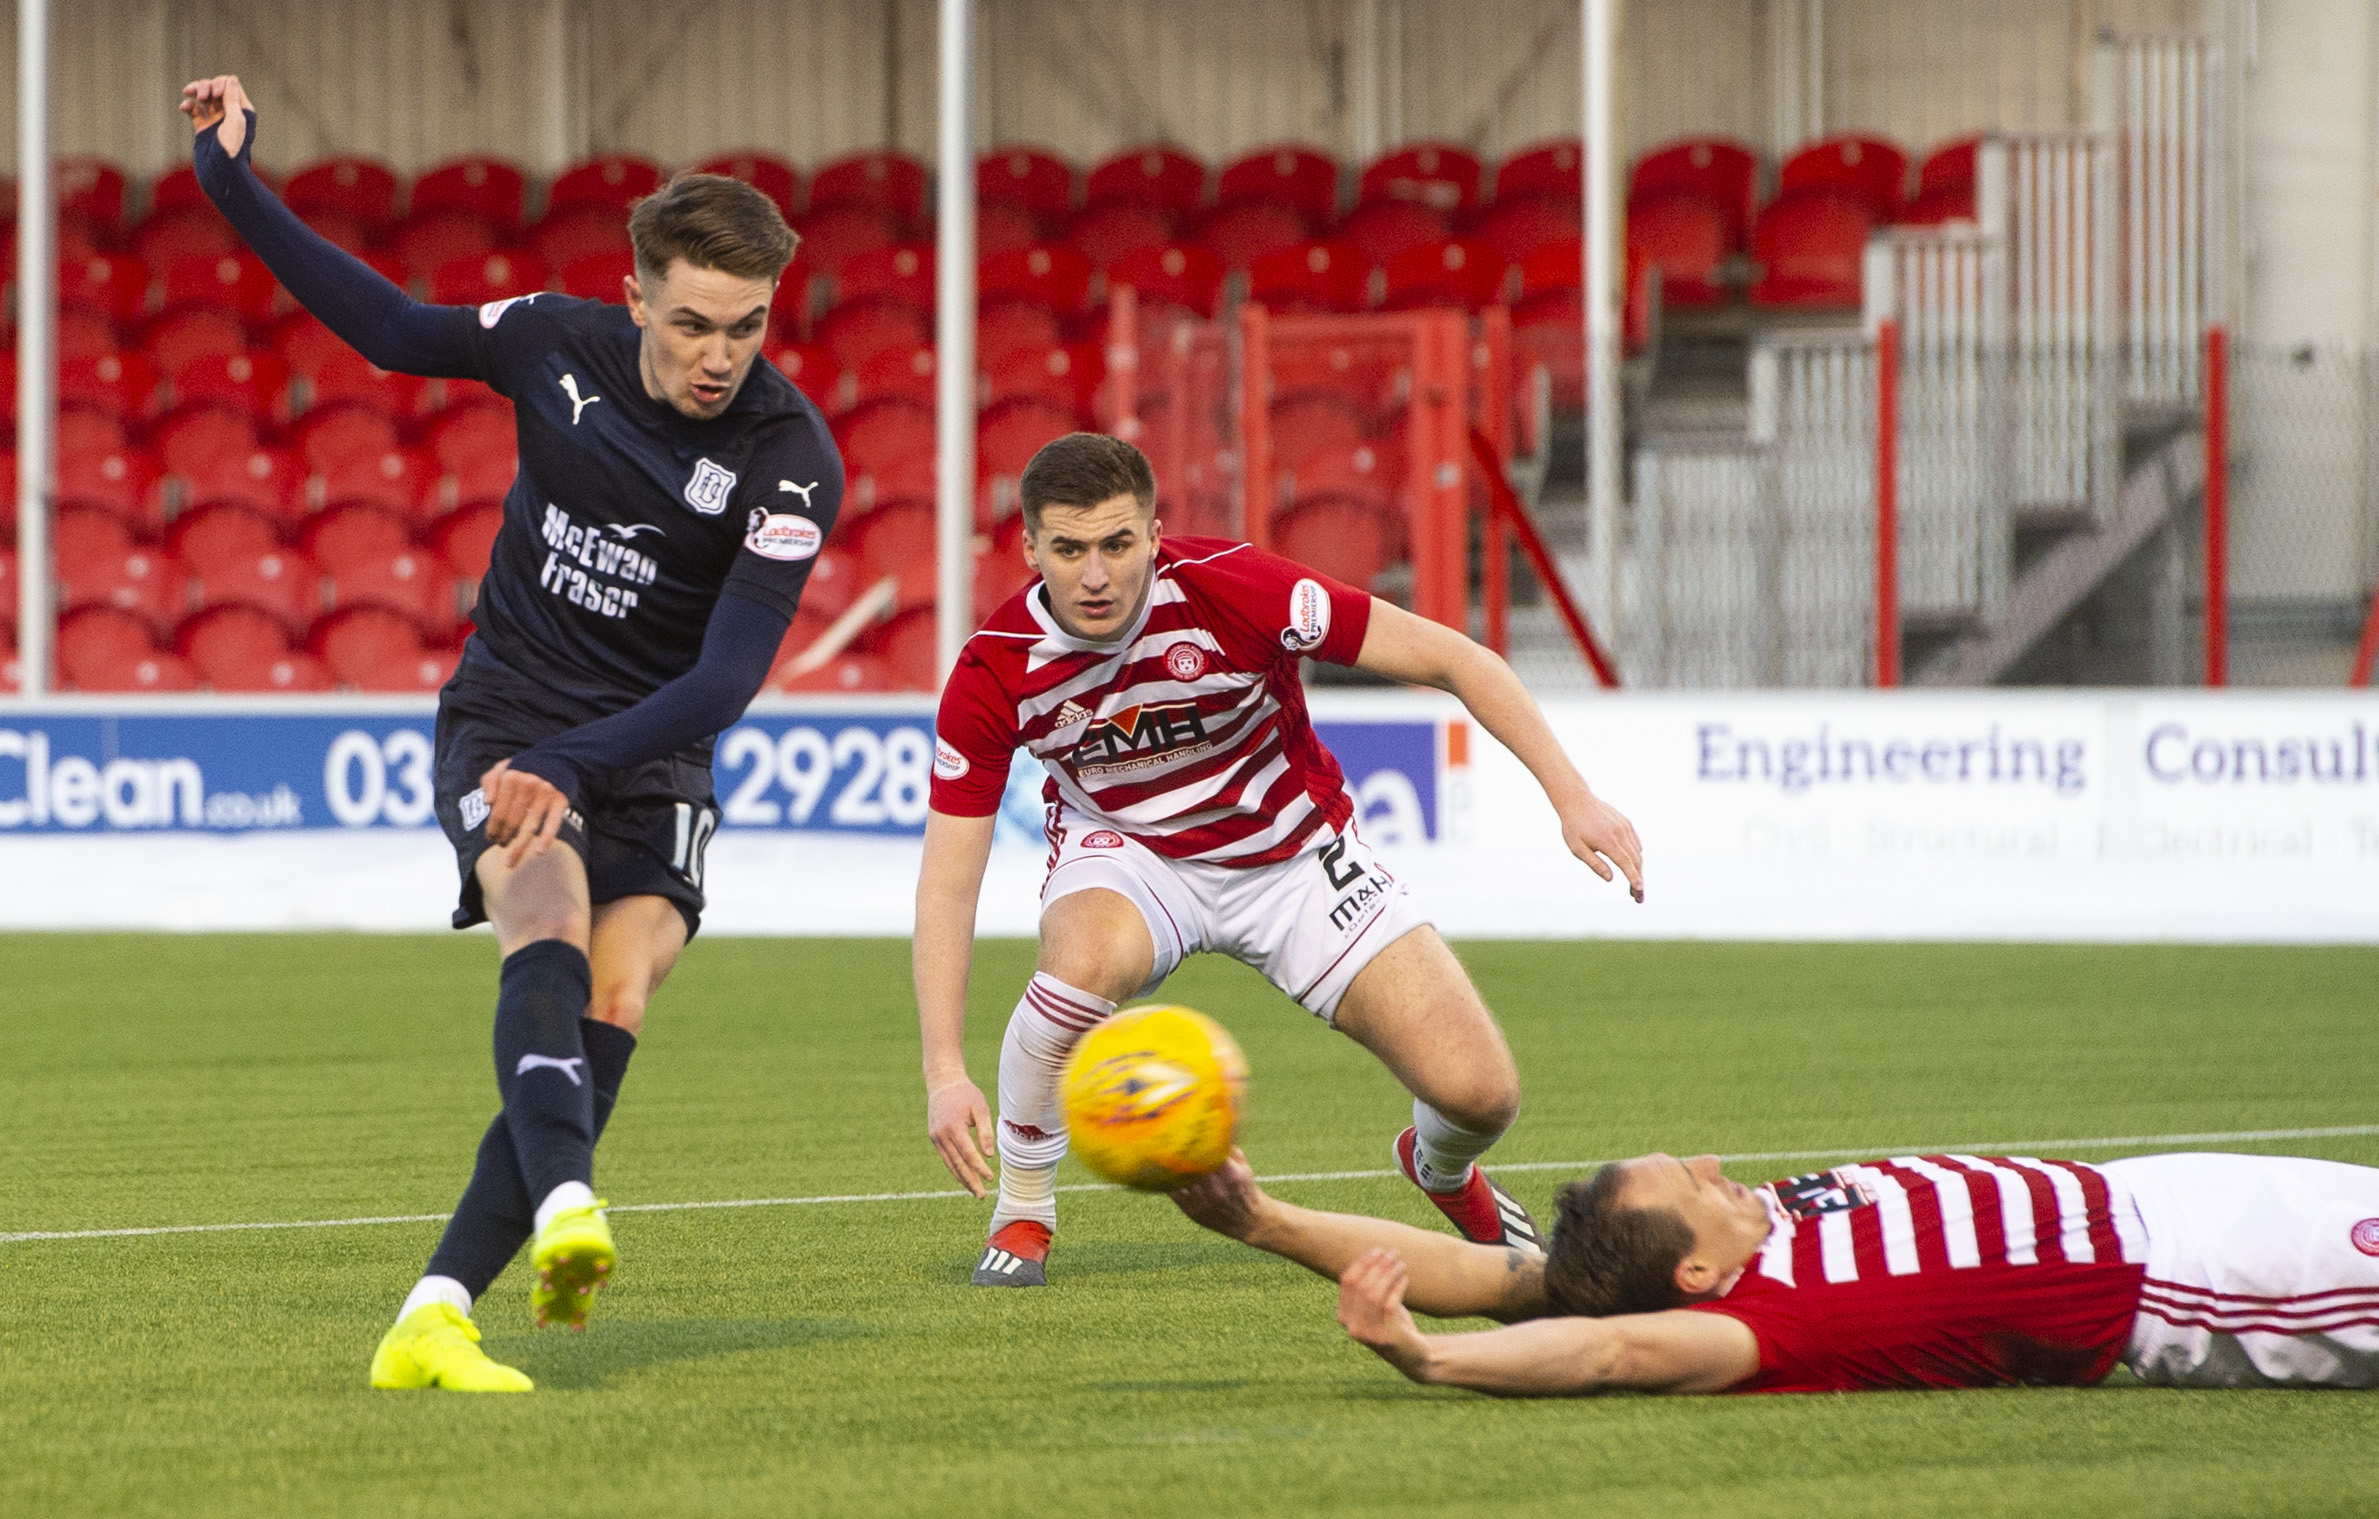 Scott Wright scores to make it 1-0 Dundee.